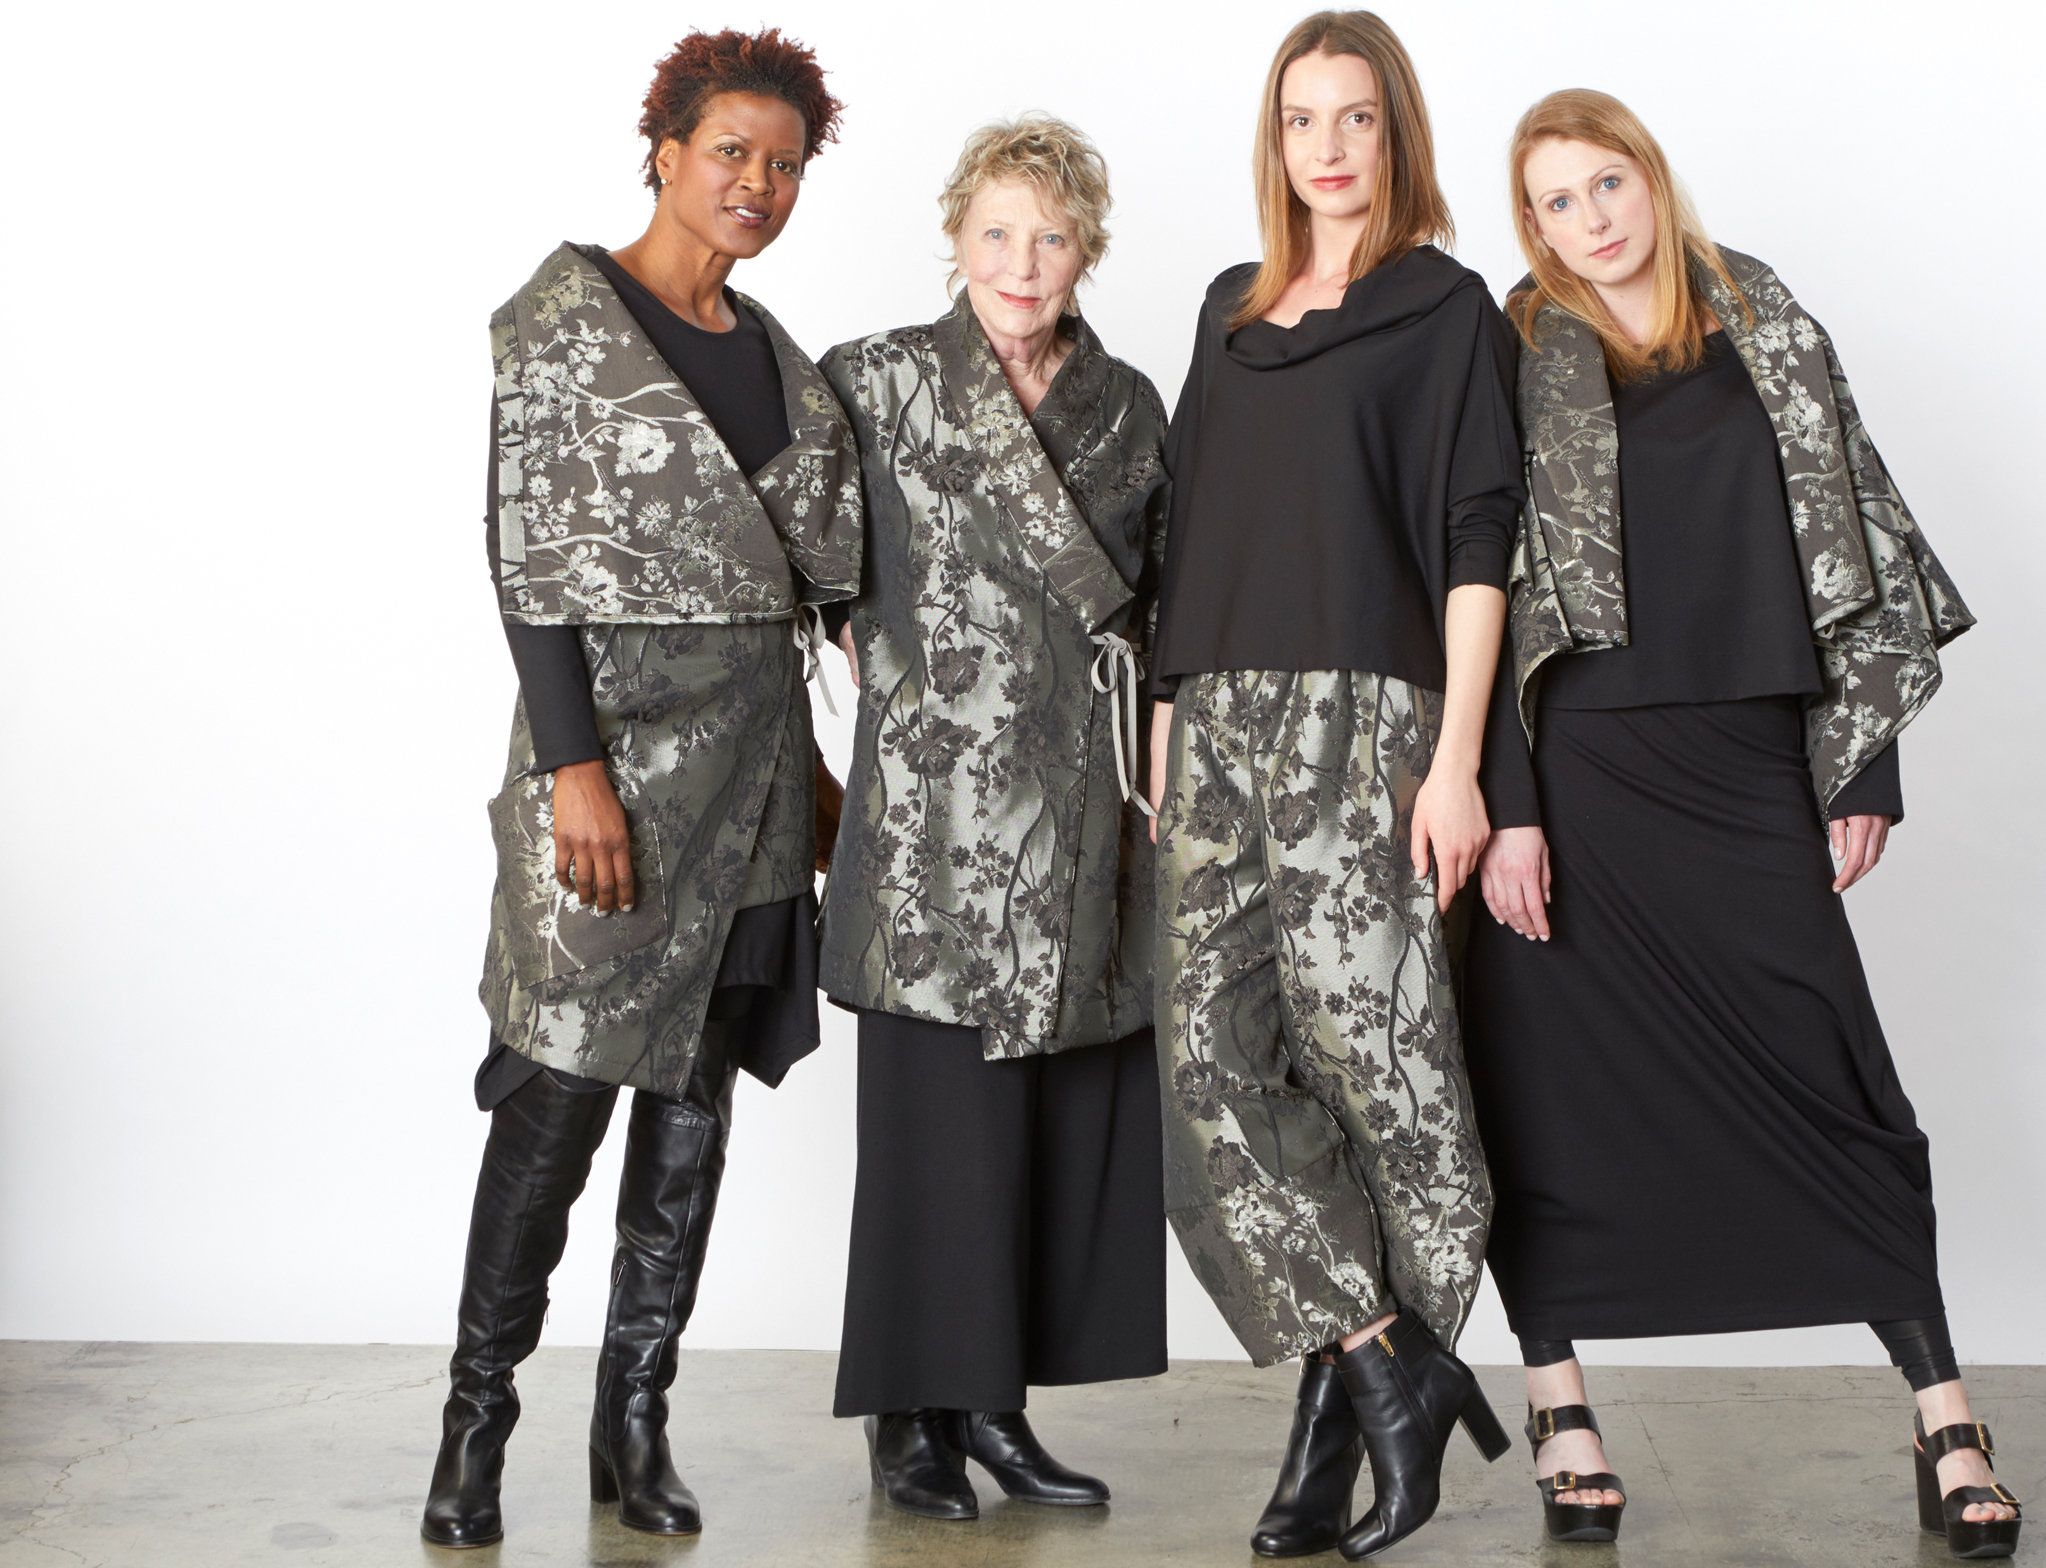 Julie Vest, Franca Jacket, Oliver Pant, Bowie Jacket in Silver Broccatello Fiori, Chase Tunic, Ella Pant, Astrid Shirt,Button Back Shirt, Hamish Skirt in Black Modal Ponti